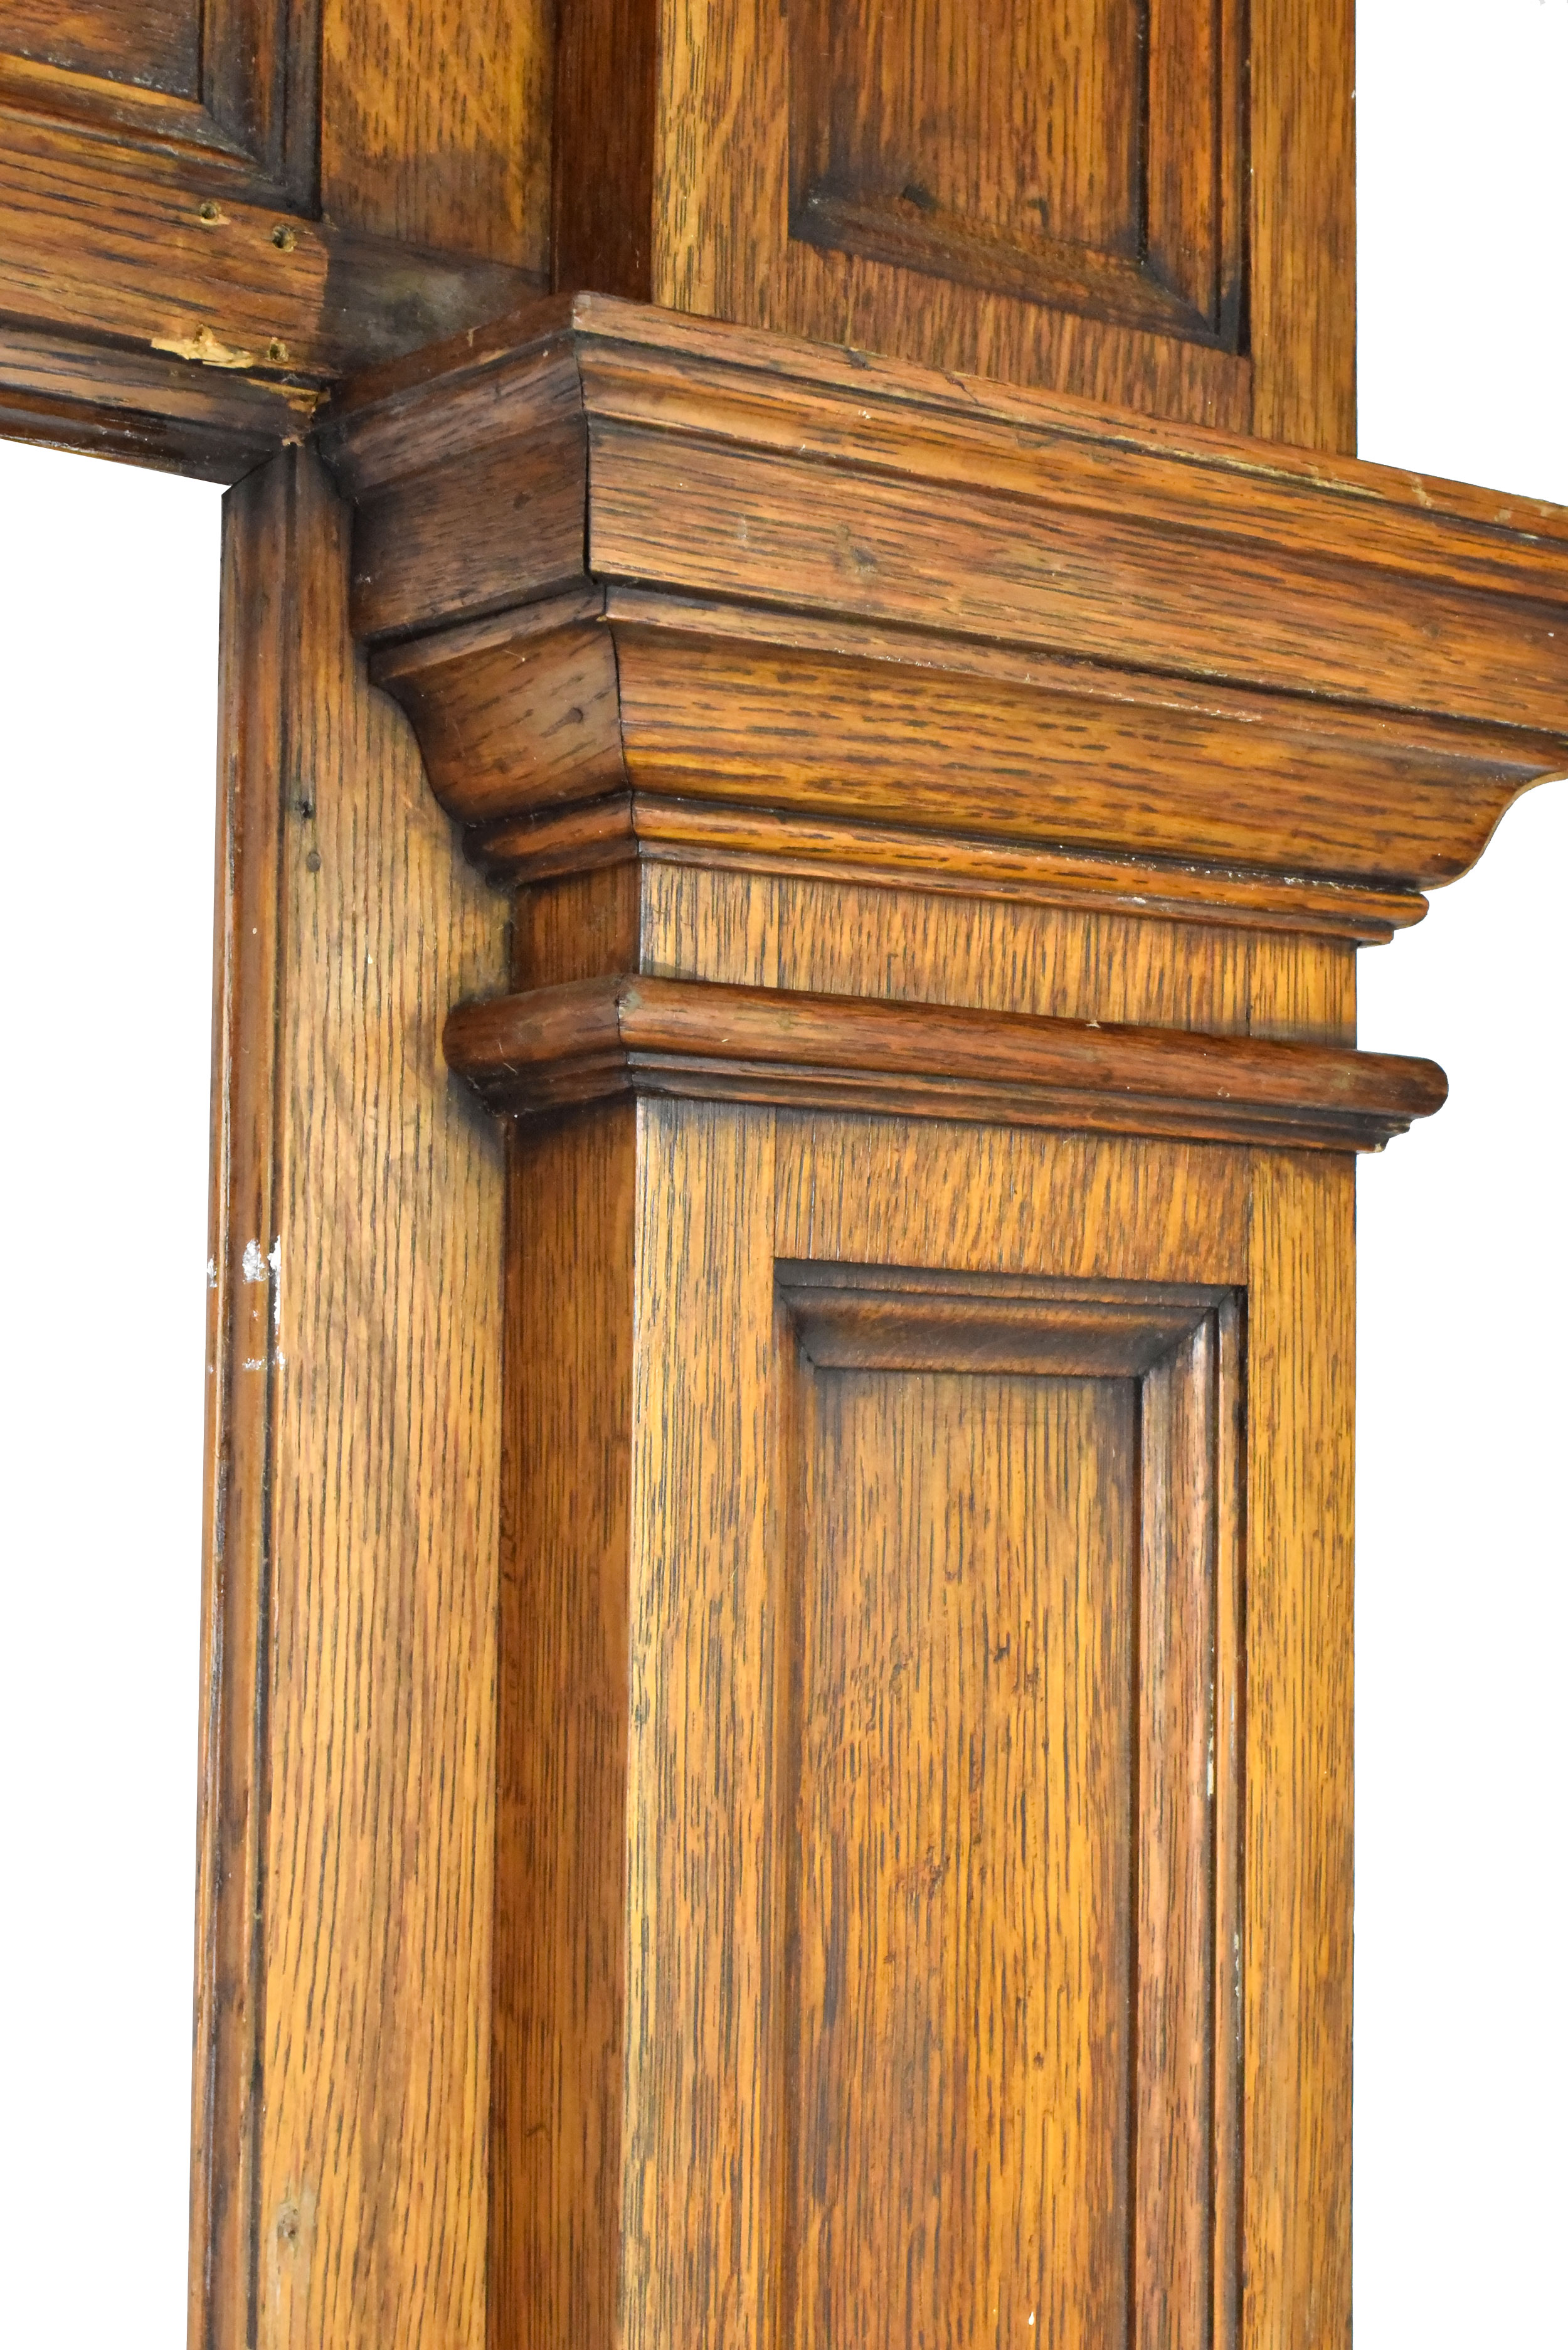 47050-walkthrough-oak-mantel-wood-grain.jpg